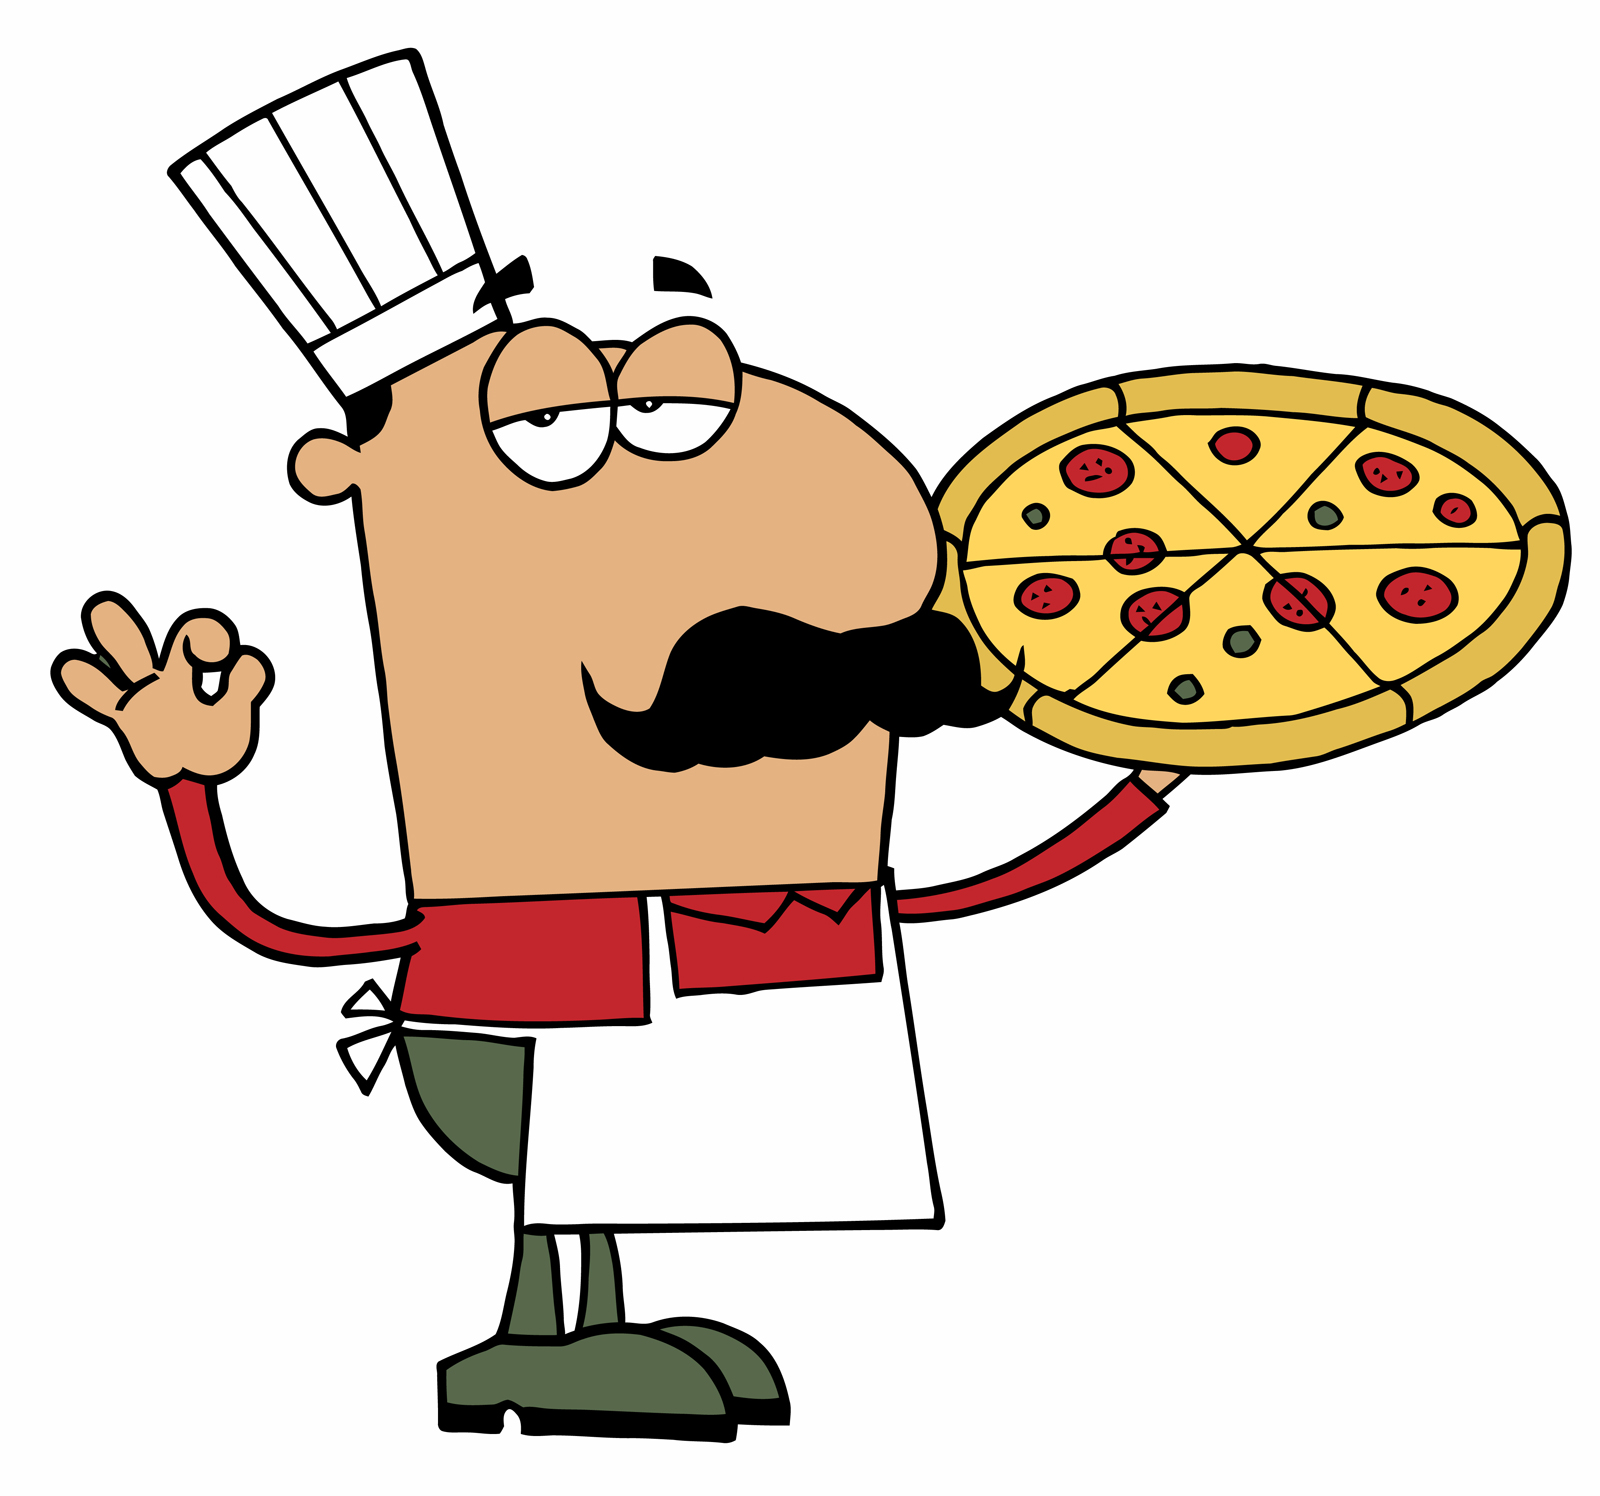 Free Animated Pizza Clipart, Download Free Clip Art, Free.